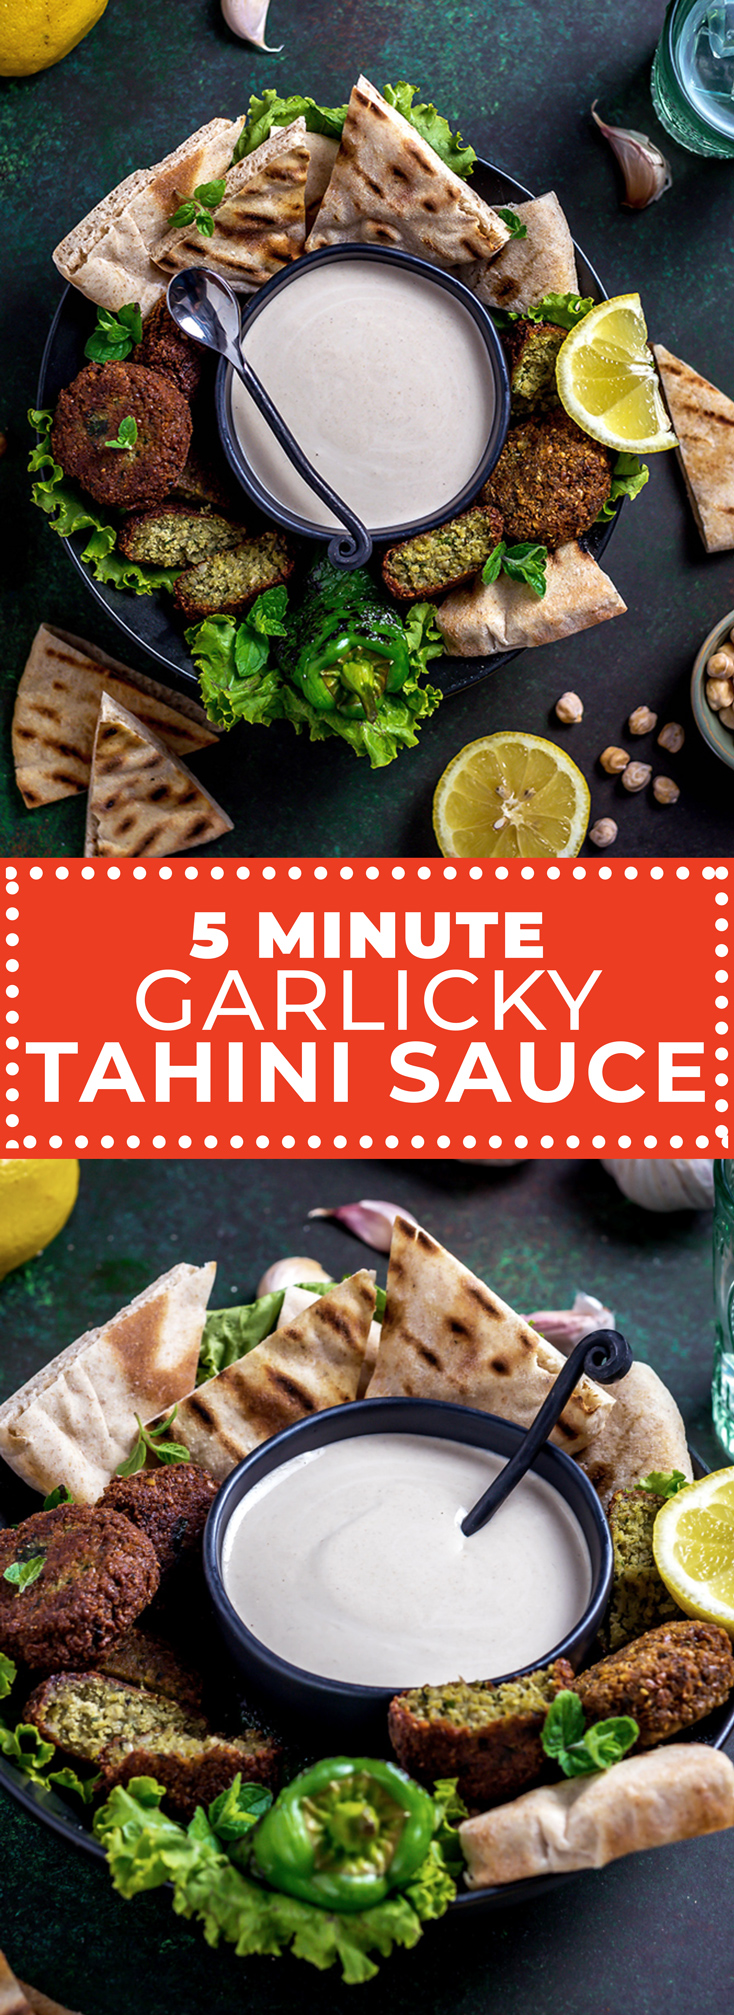 5 Minute Garlicky Tahini Sauce is a traditional Middle Eastern sesame seed based sauce that's tangy, nutty, creamy, and silky smooth without any help from dairy. The secret that makes this recipe the best (and easiest)? Blending a whole, unpeeled head of garlic with fresh lemon juice. It sounds weird, but if you read on you'll understand why! | hostthetoast.com